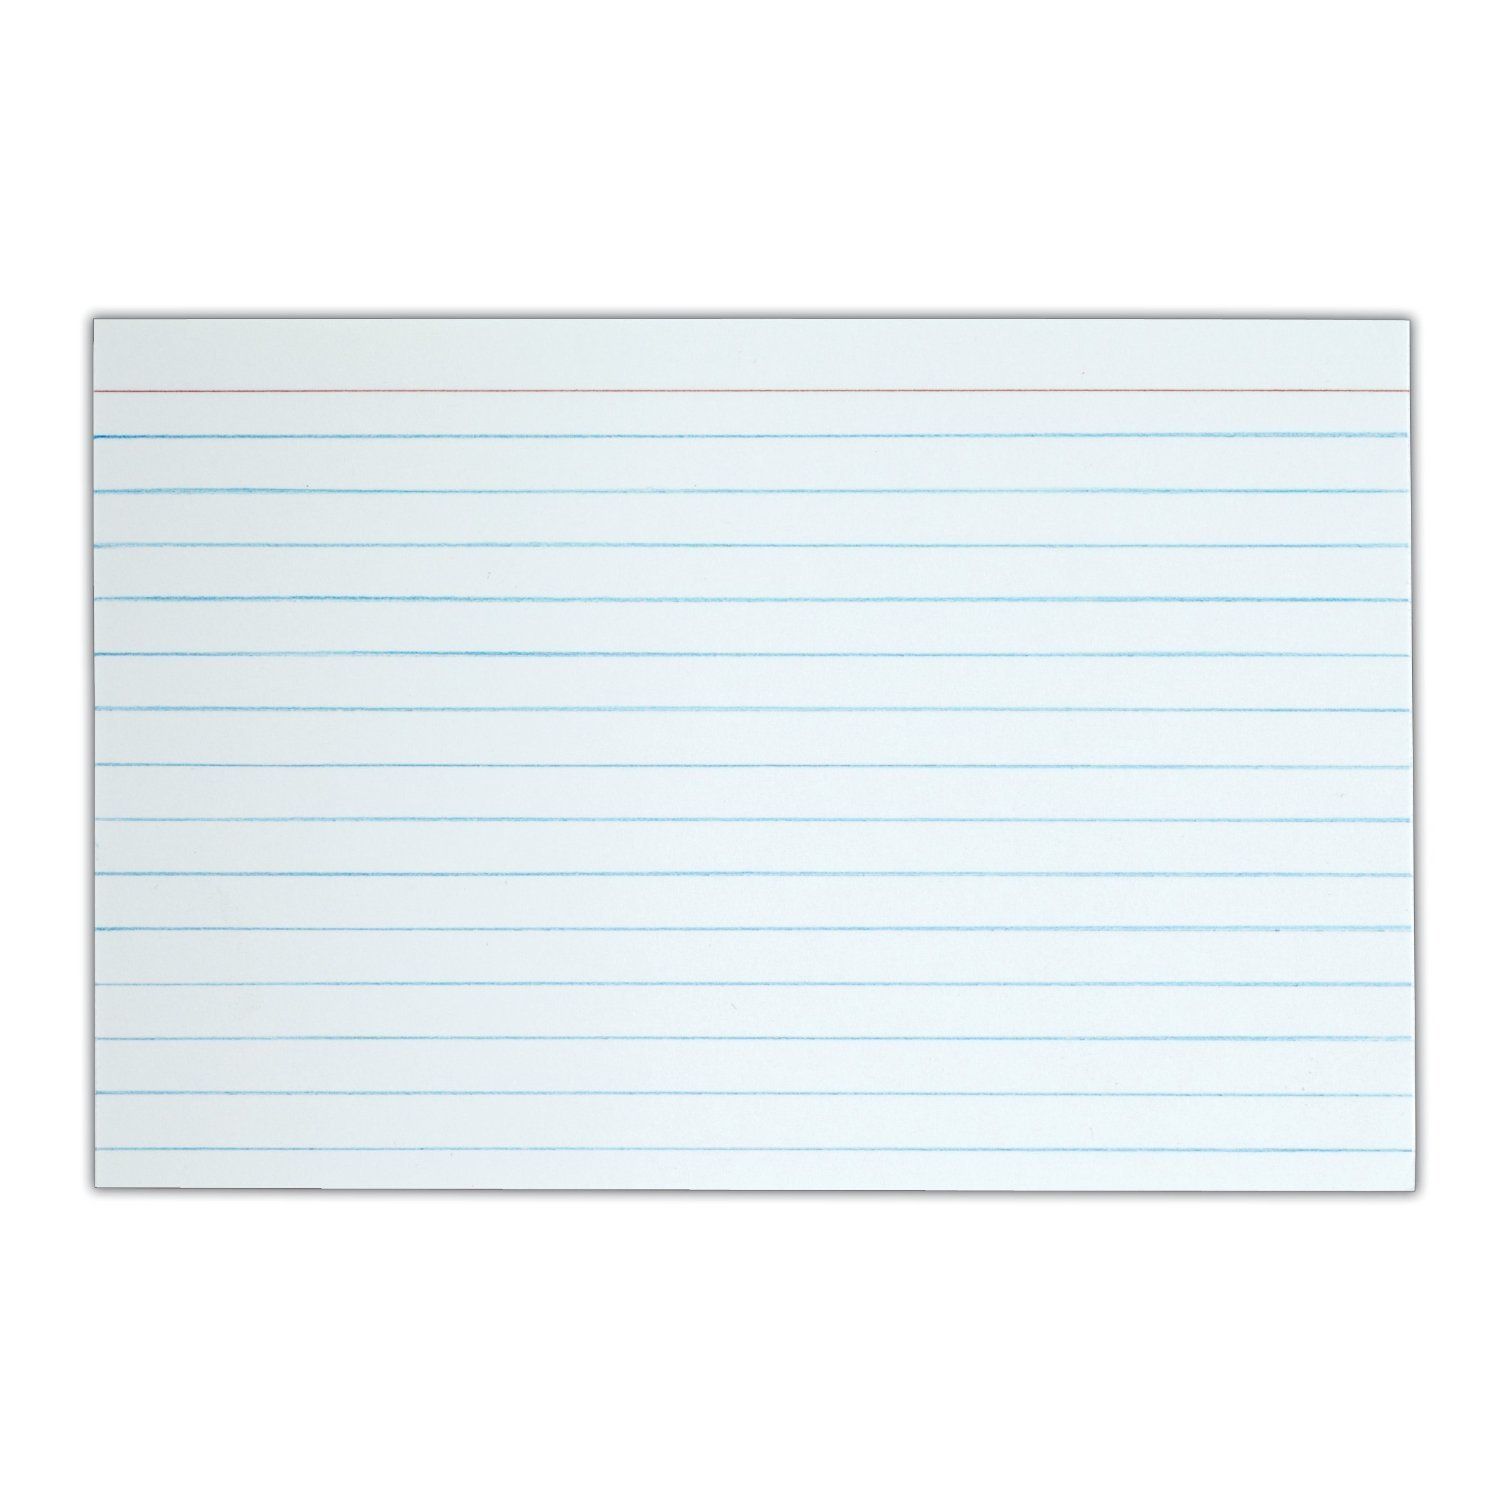 Amazon.com : TOPS Index Cards, 4 x 6-Inches, White, 90 Lb, Narrow ...